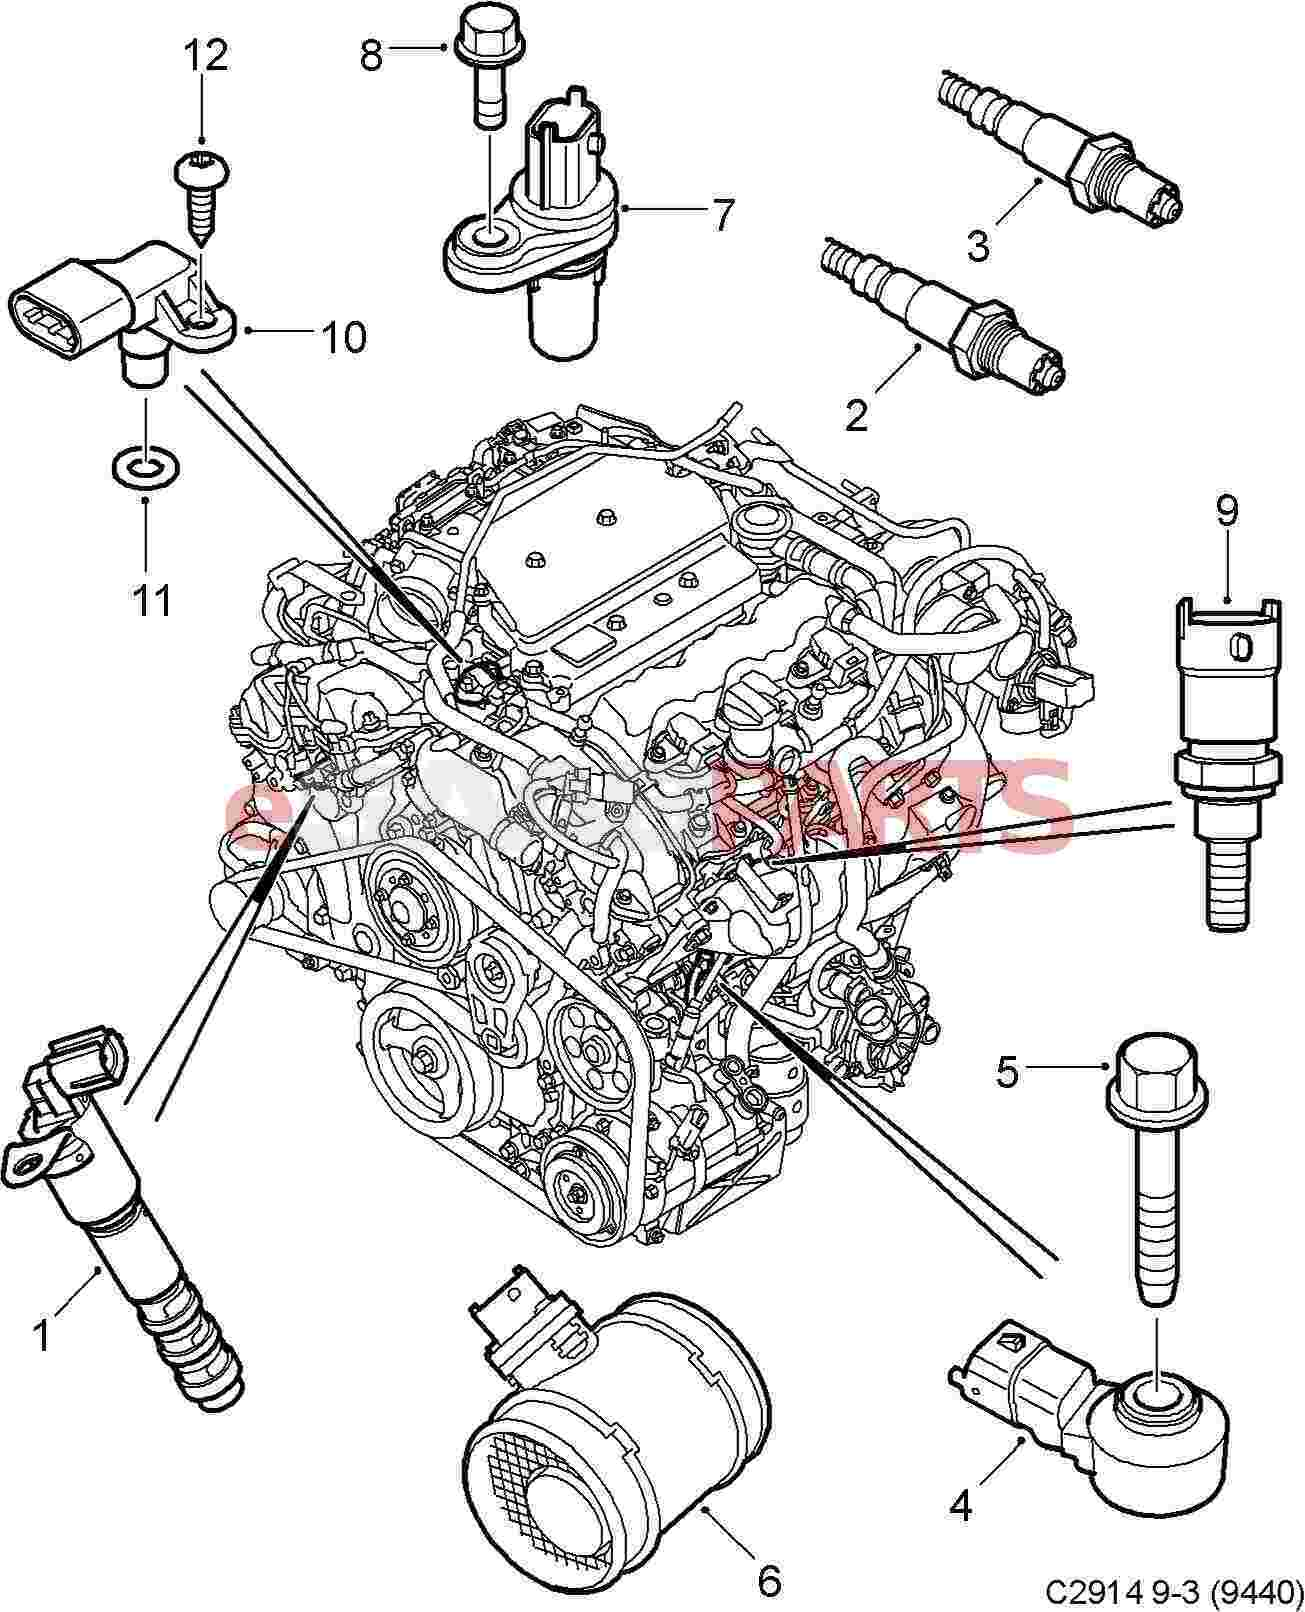 hight resolution of 1999 saab 9 3 engine diagram data wiring diagram schema cadillac engine diagram saab engine diagrams